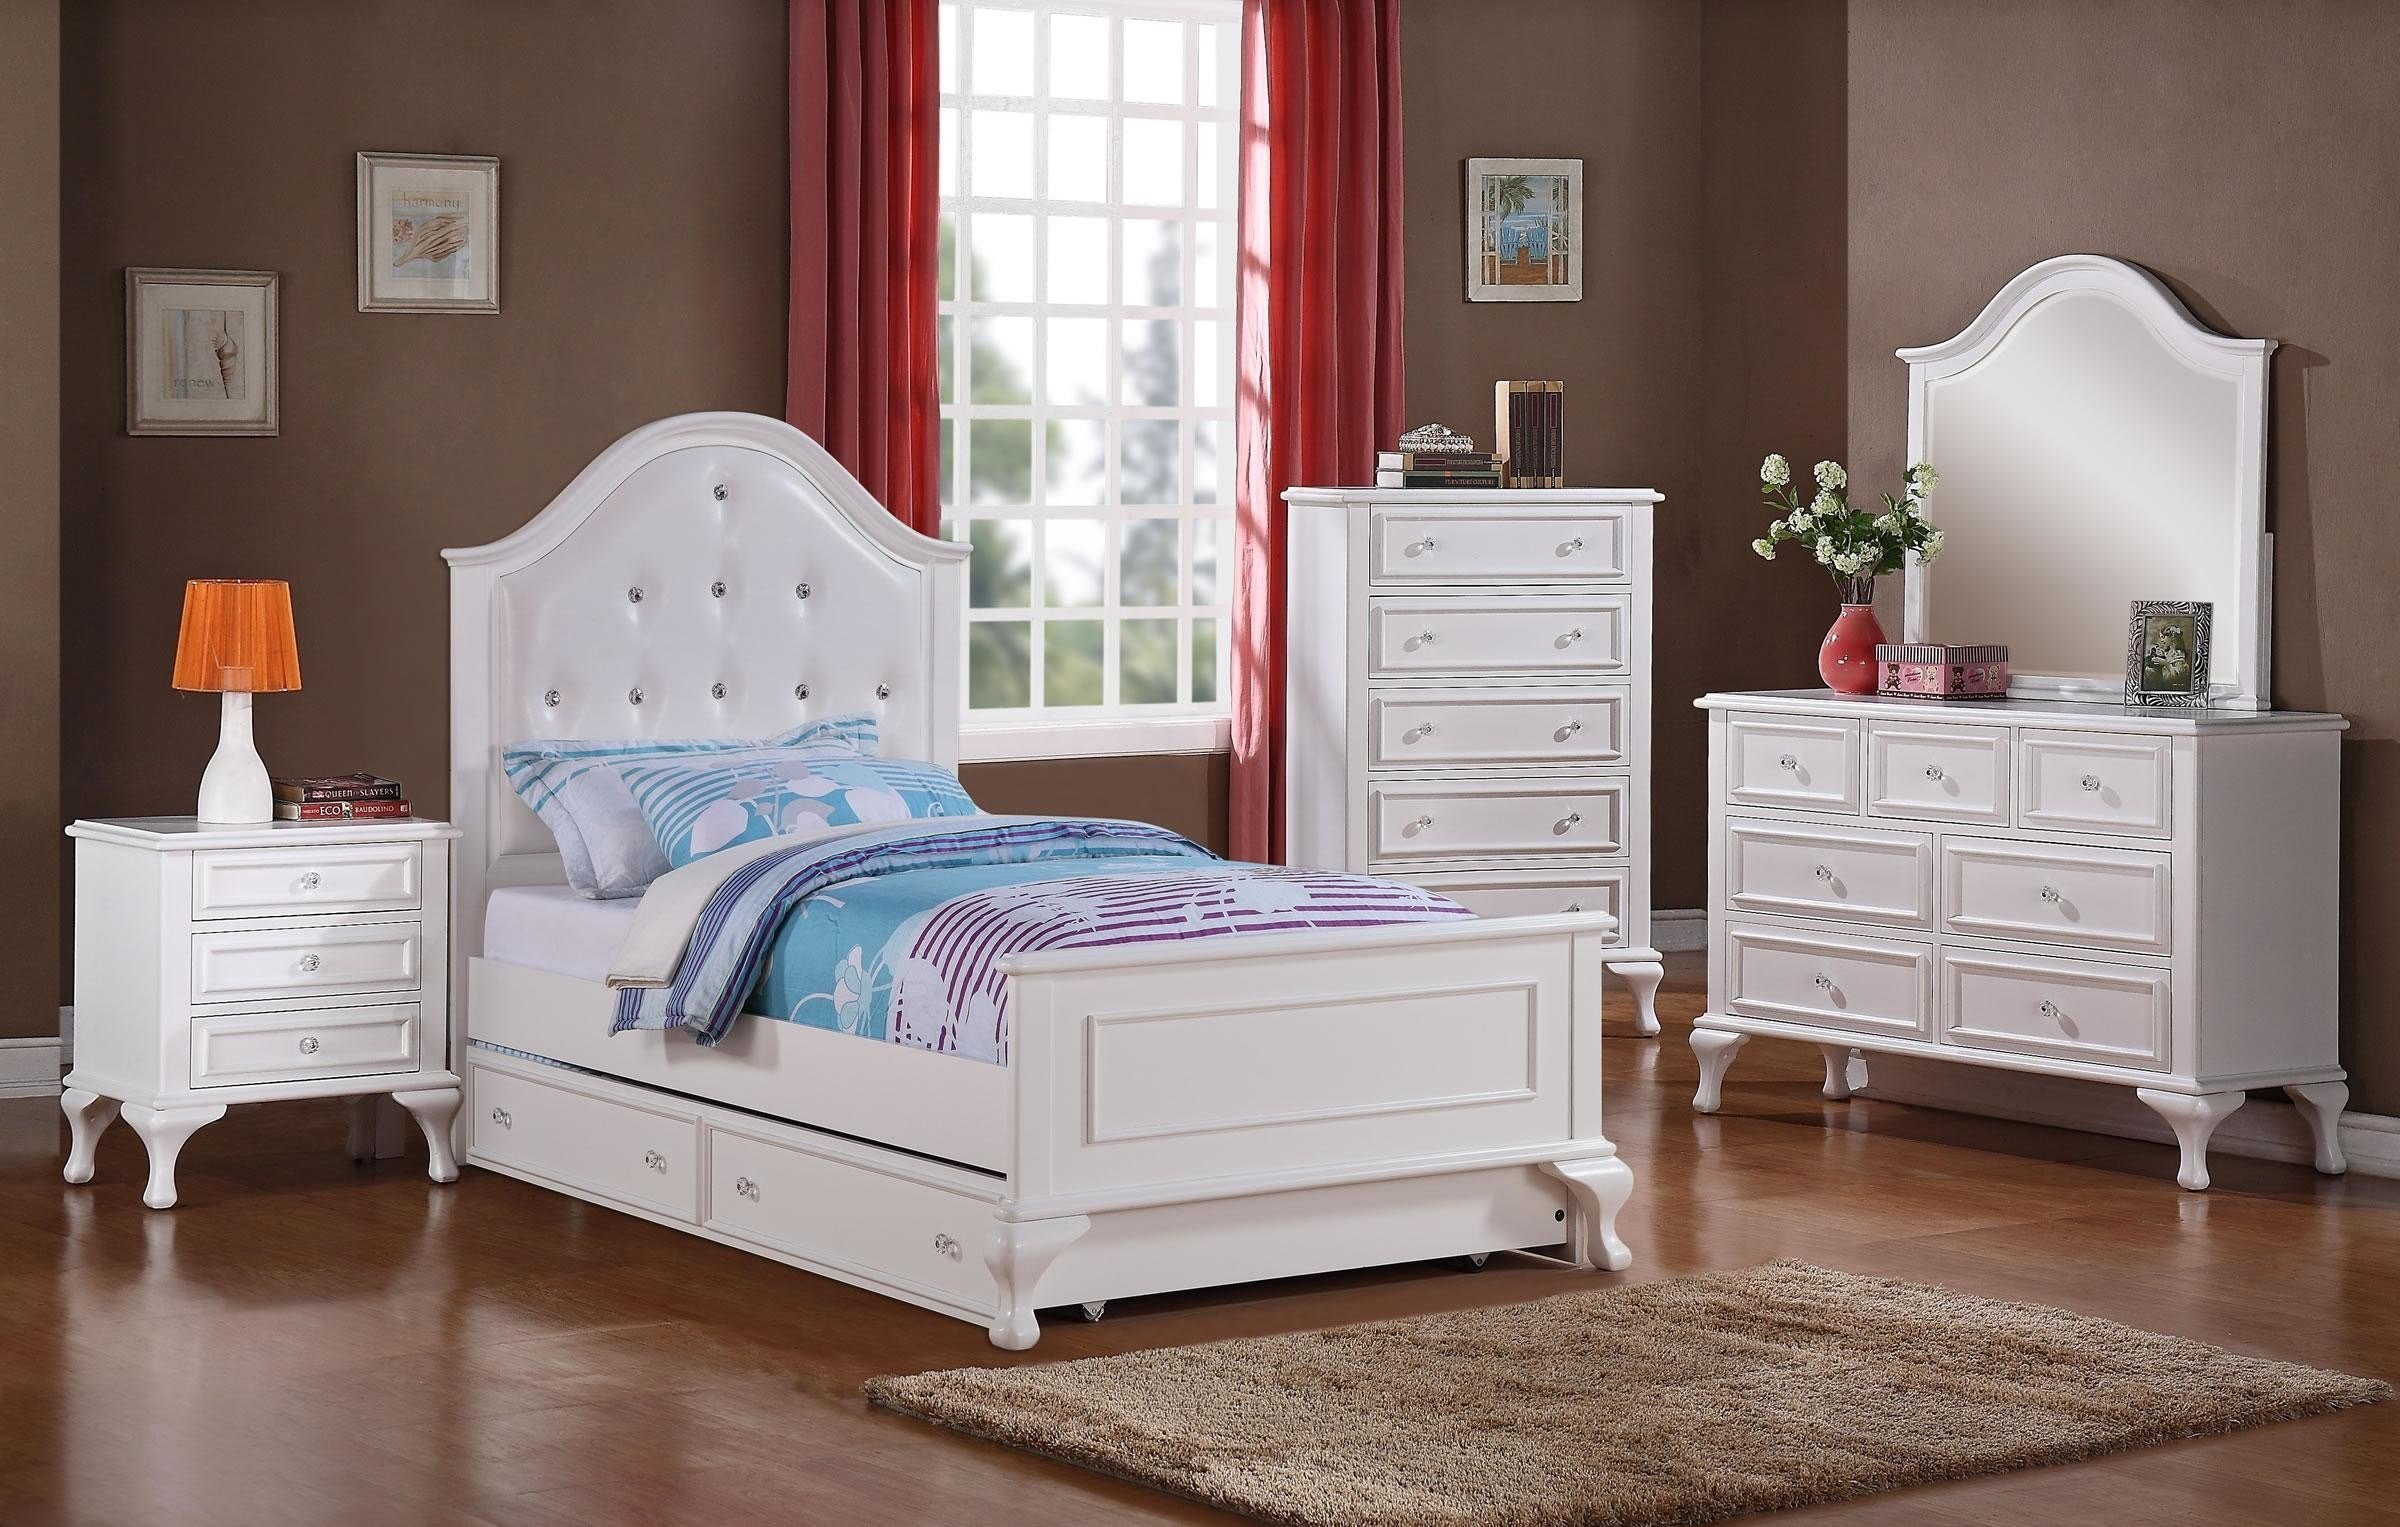 Best Youth Bedroom Set Me01 651 Full Twin Bed Room Youth Bedroom With Pictures